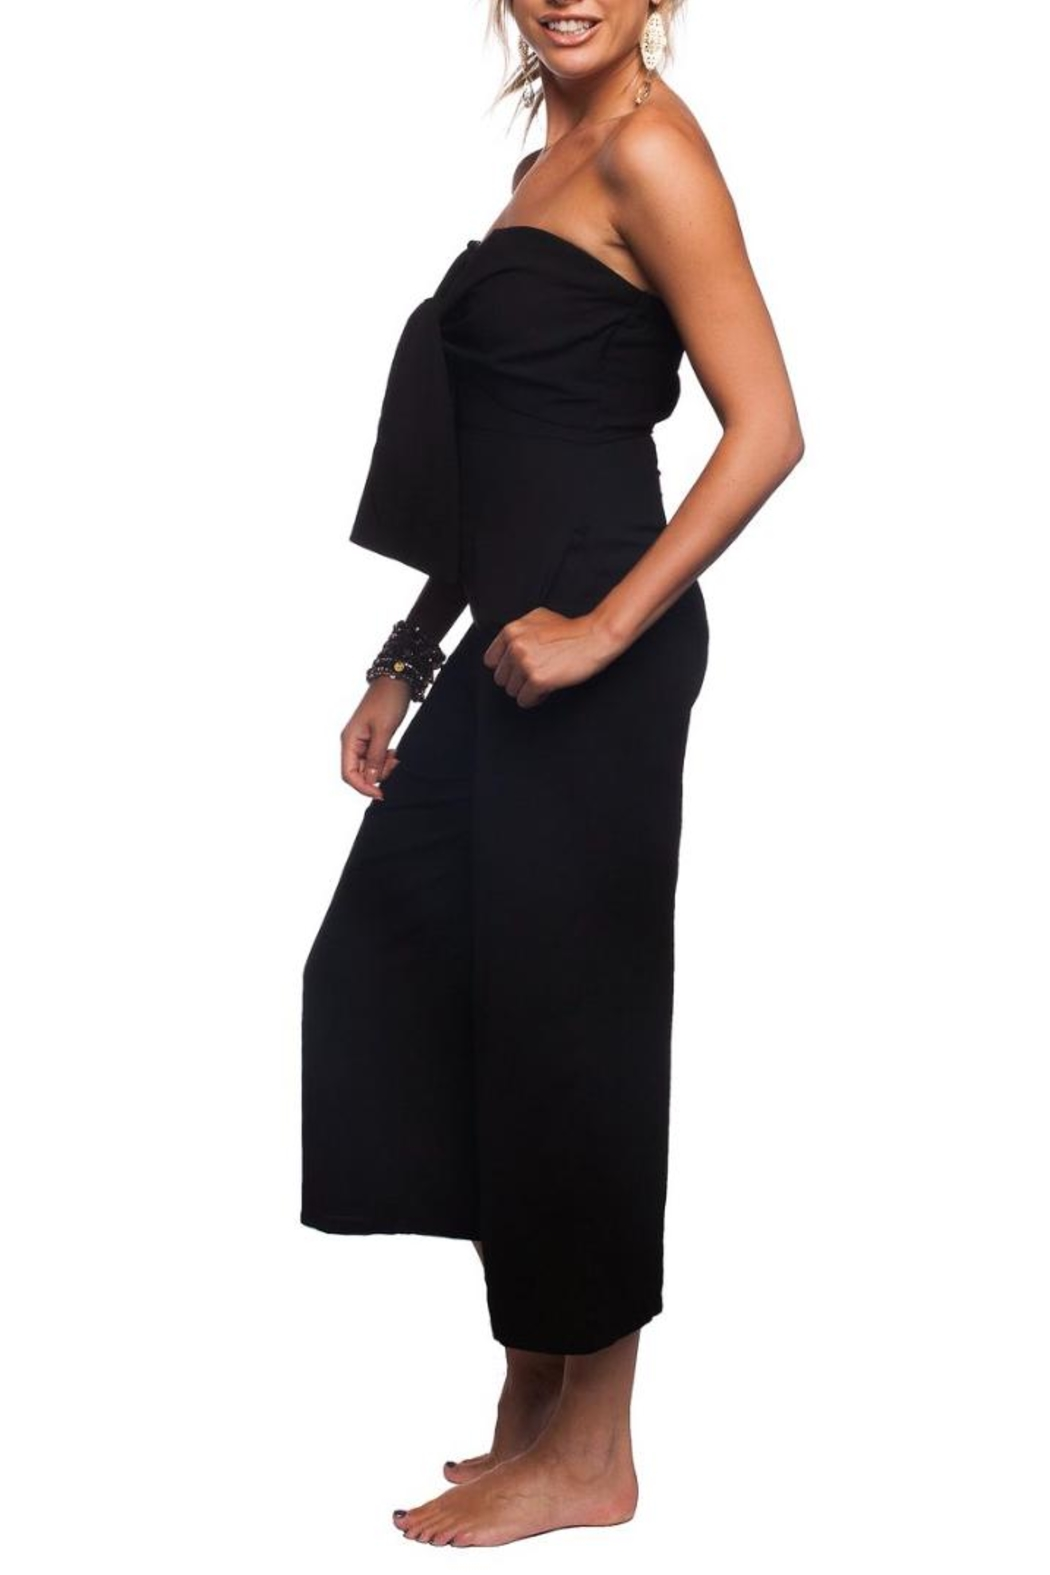 Buddy Love Black Tie-Front Jumpsuit - Front Full Image